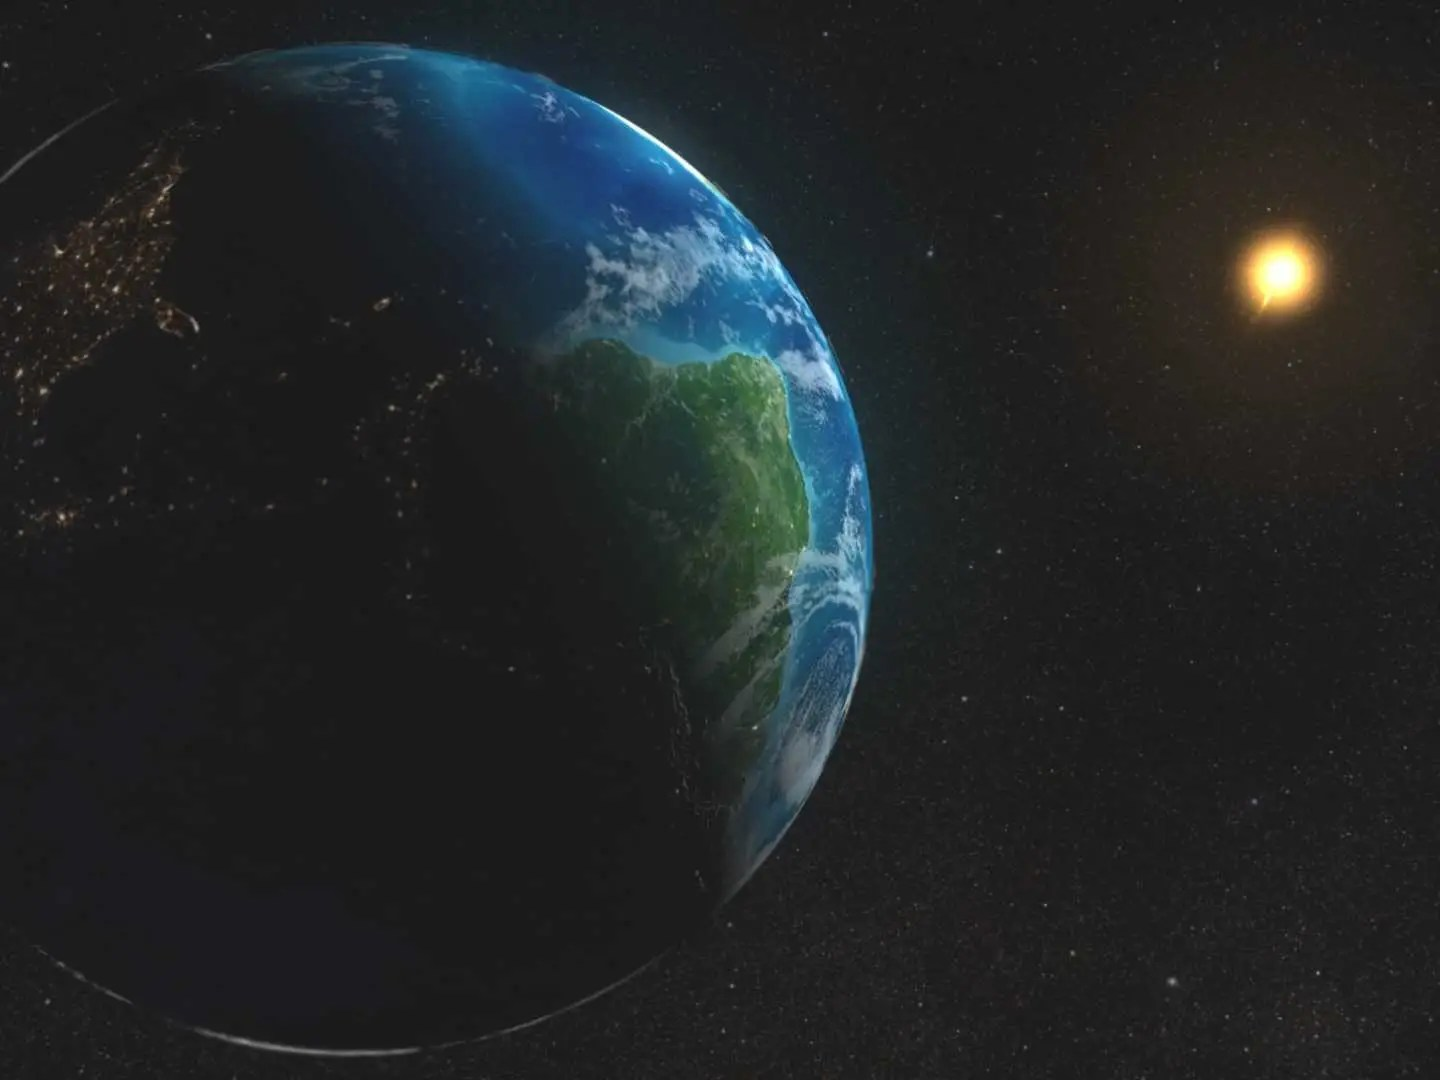 Get an idea of how big the Earth really is.